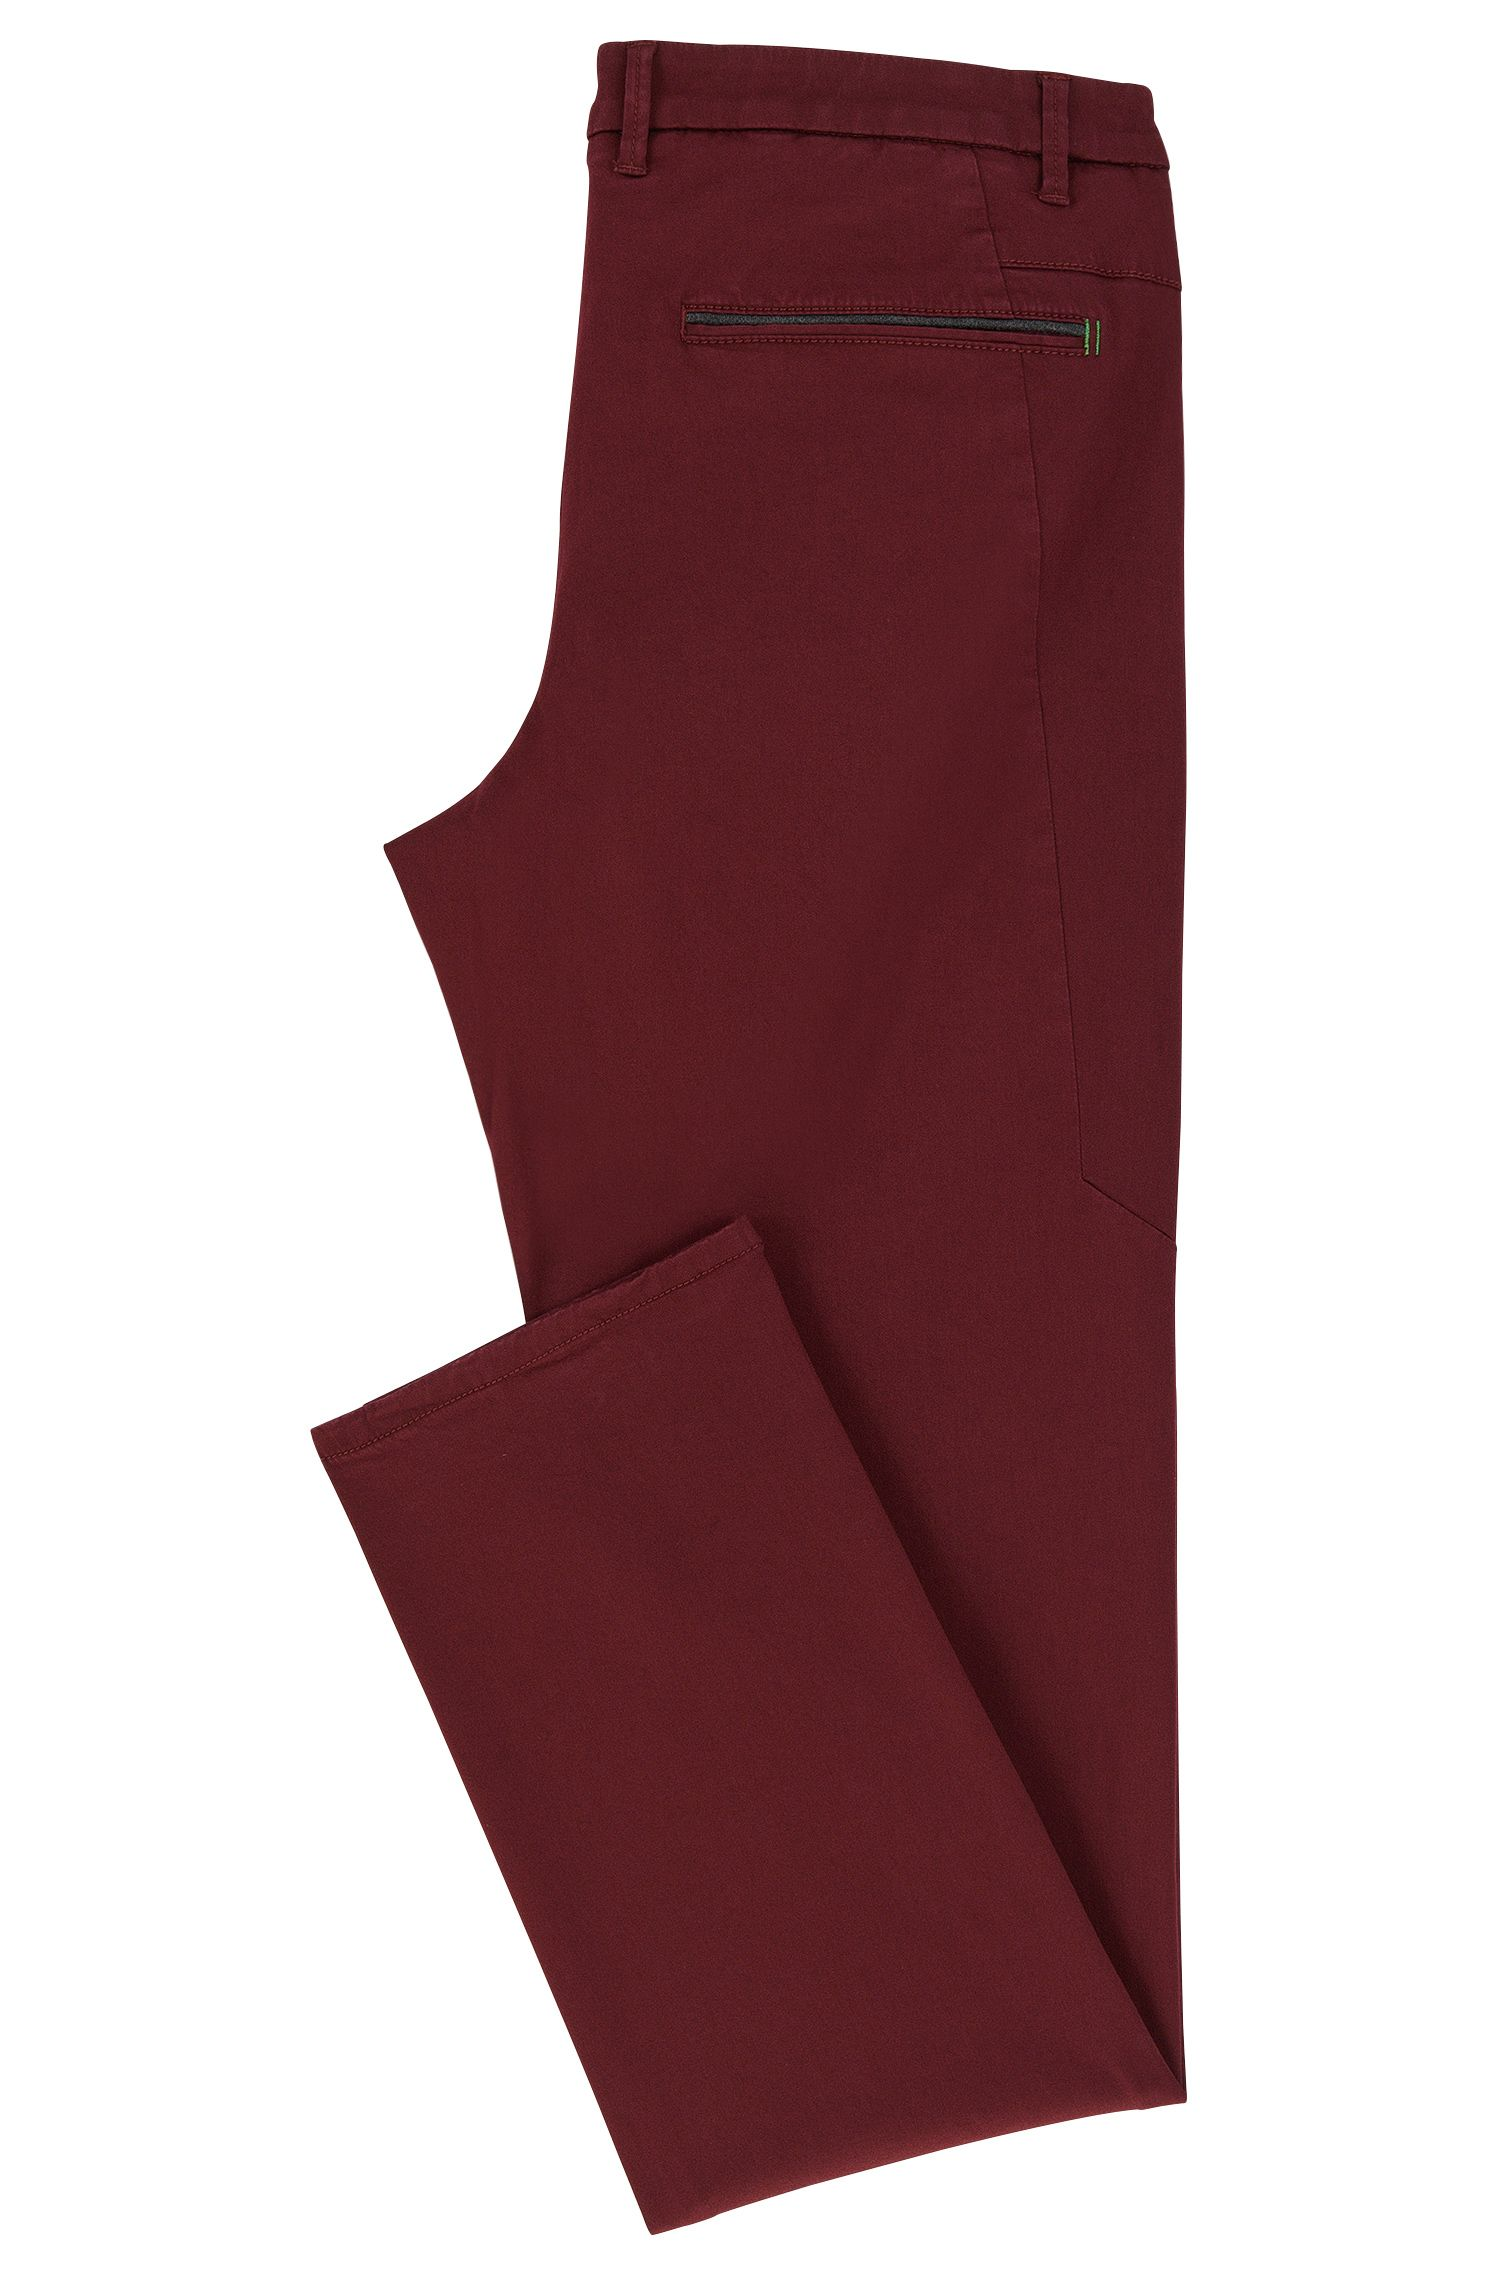 Slim Fit, Stretch Cotton Blend Pants | Leeman W, Red